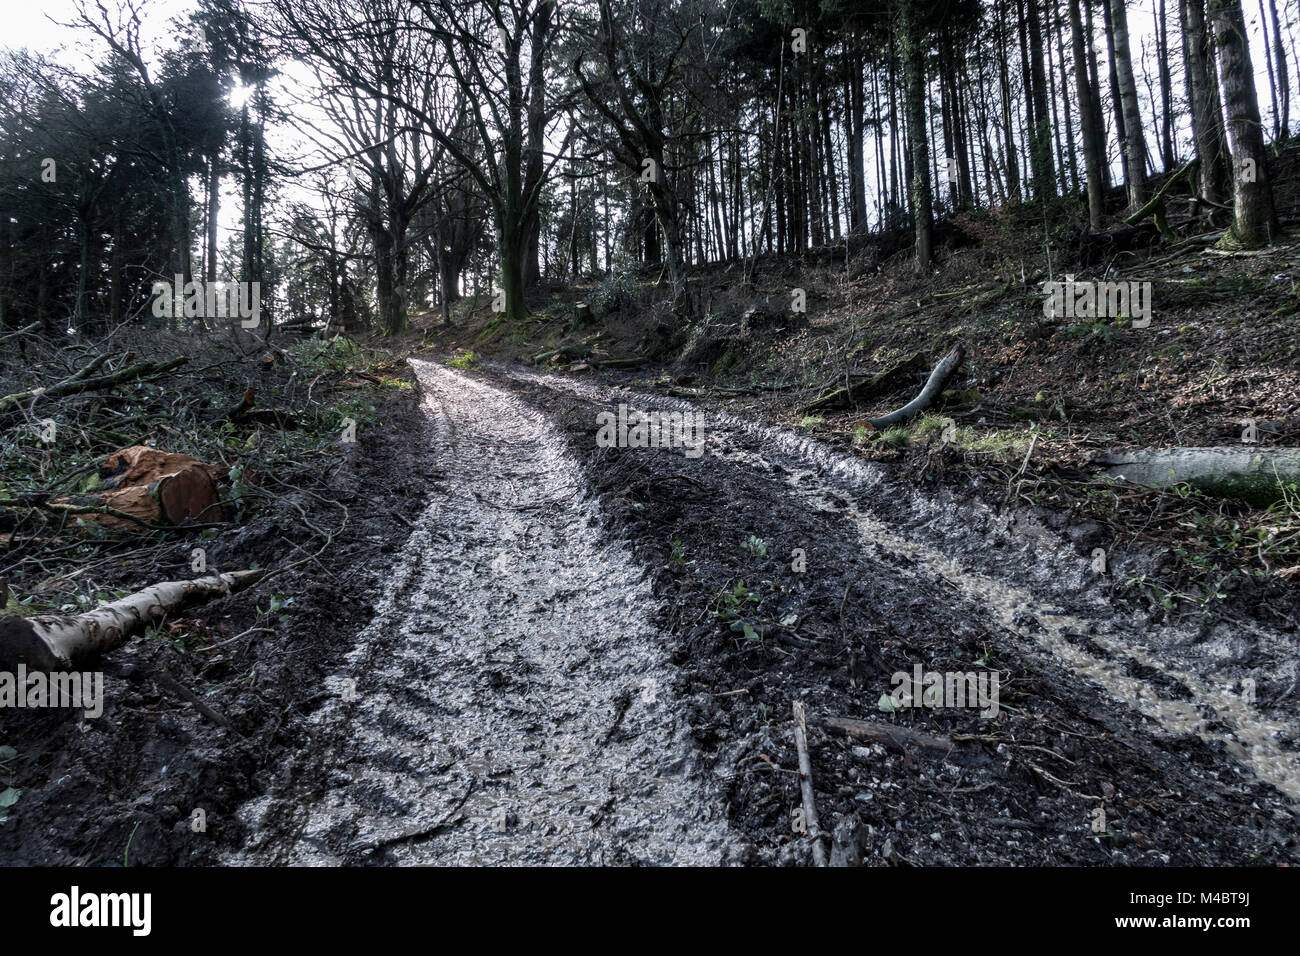 A very muddy track through woodland, where heavy machinery has churned up the earth - Stock Image